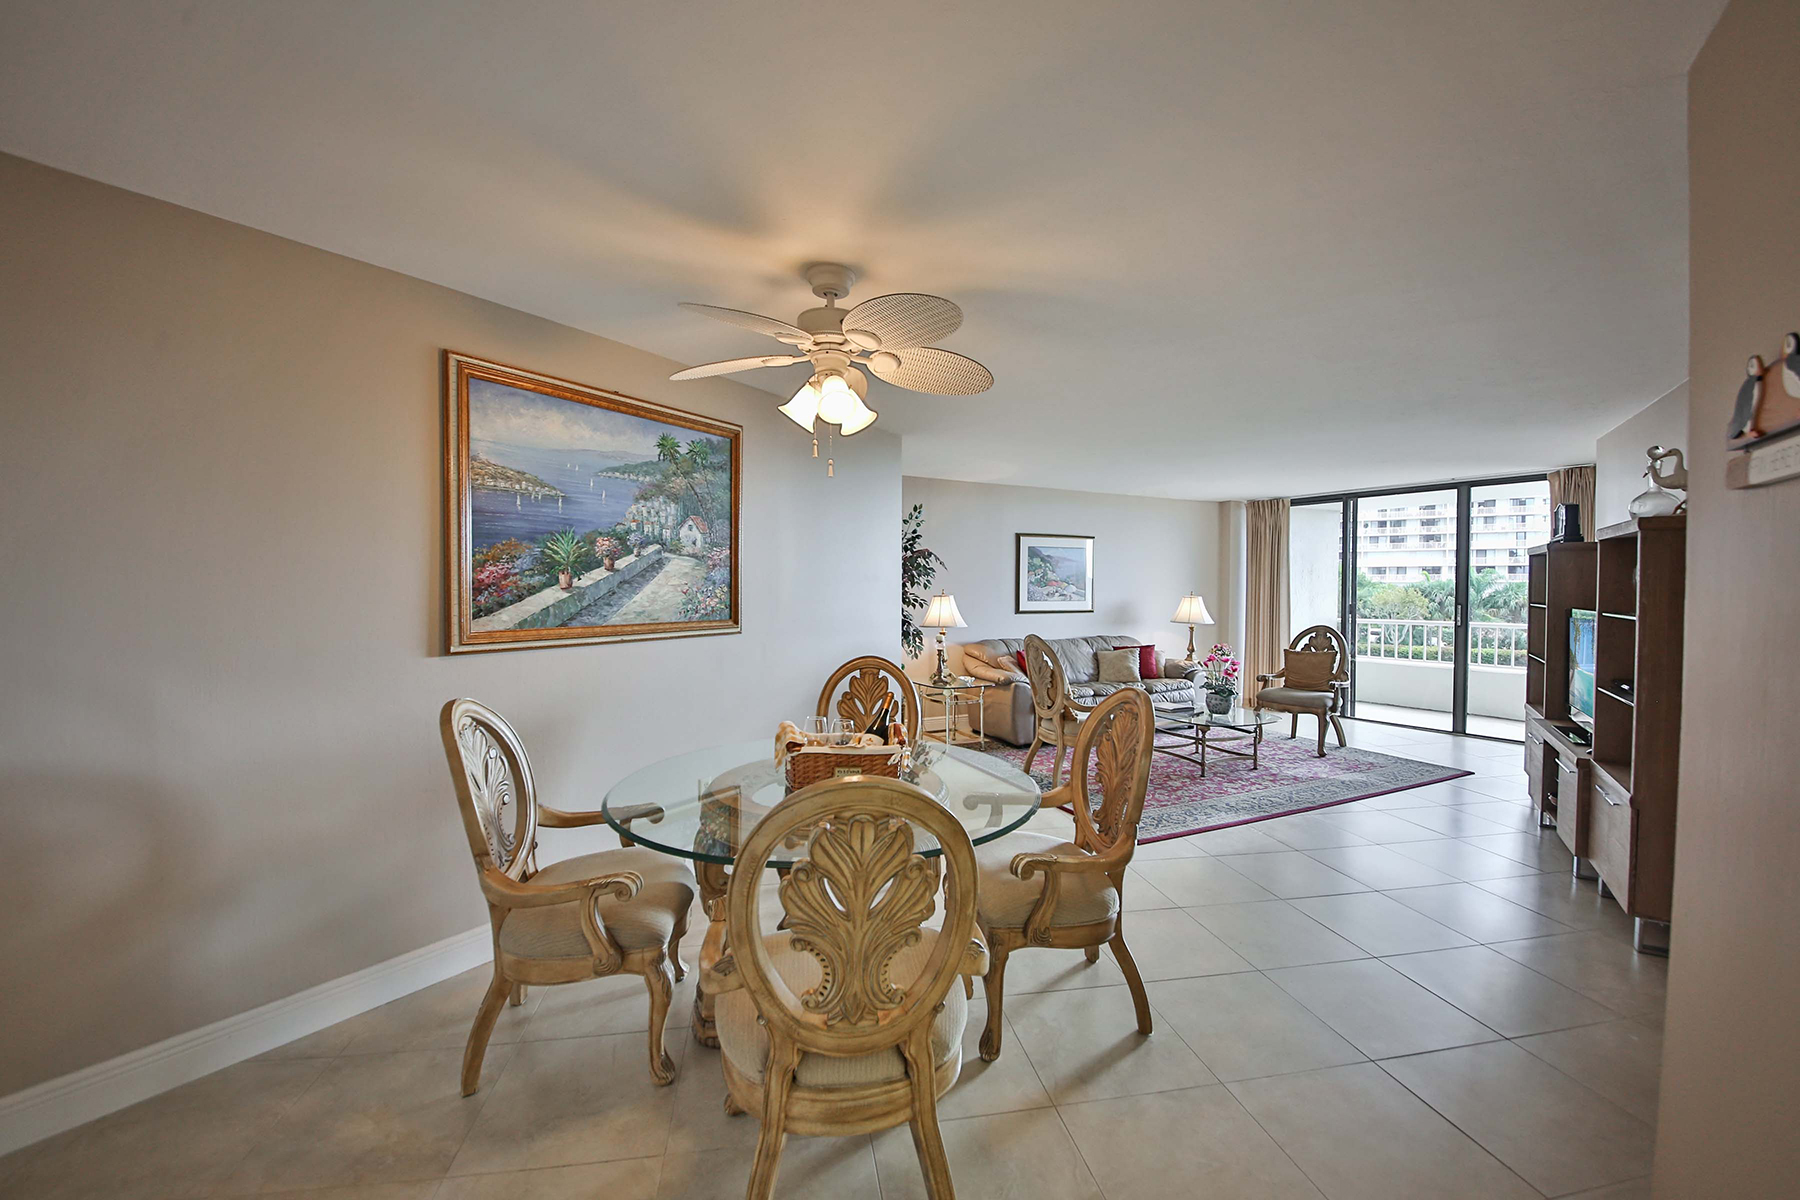 Condominium for Sale at MARCO ISLAND 380 Seaview Ct 207 Marco Island, Florida, 34145 United States